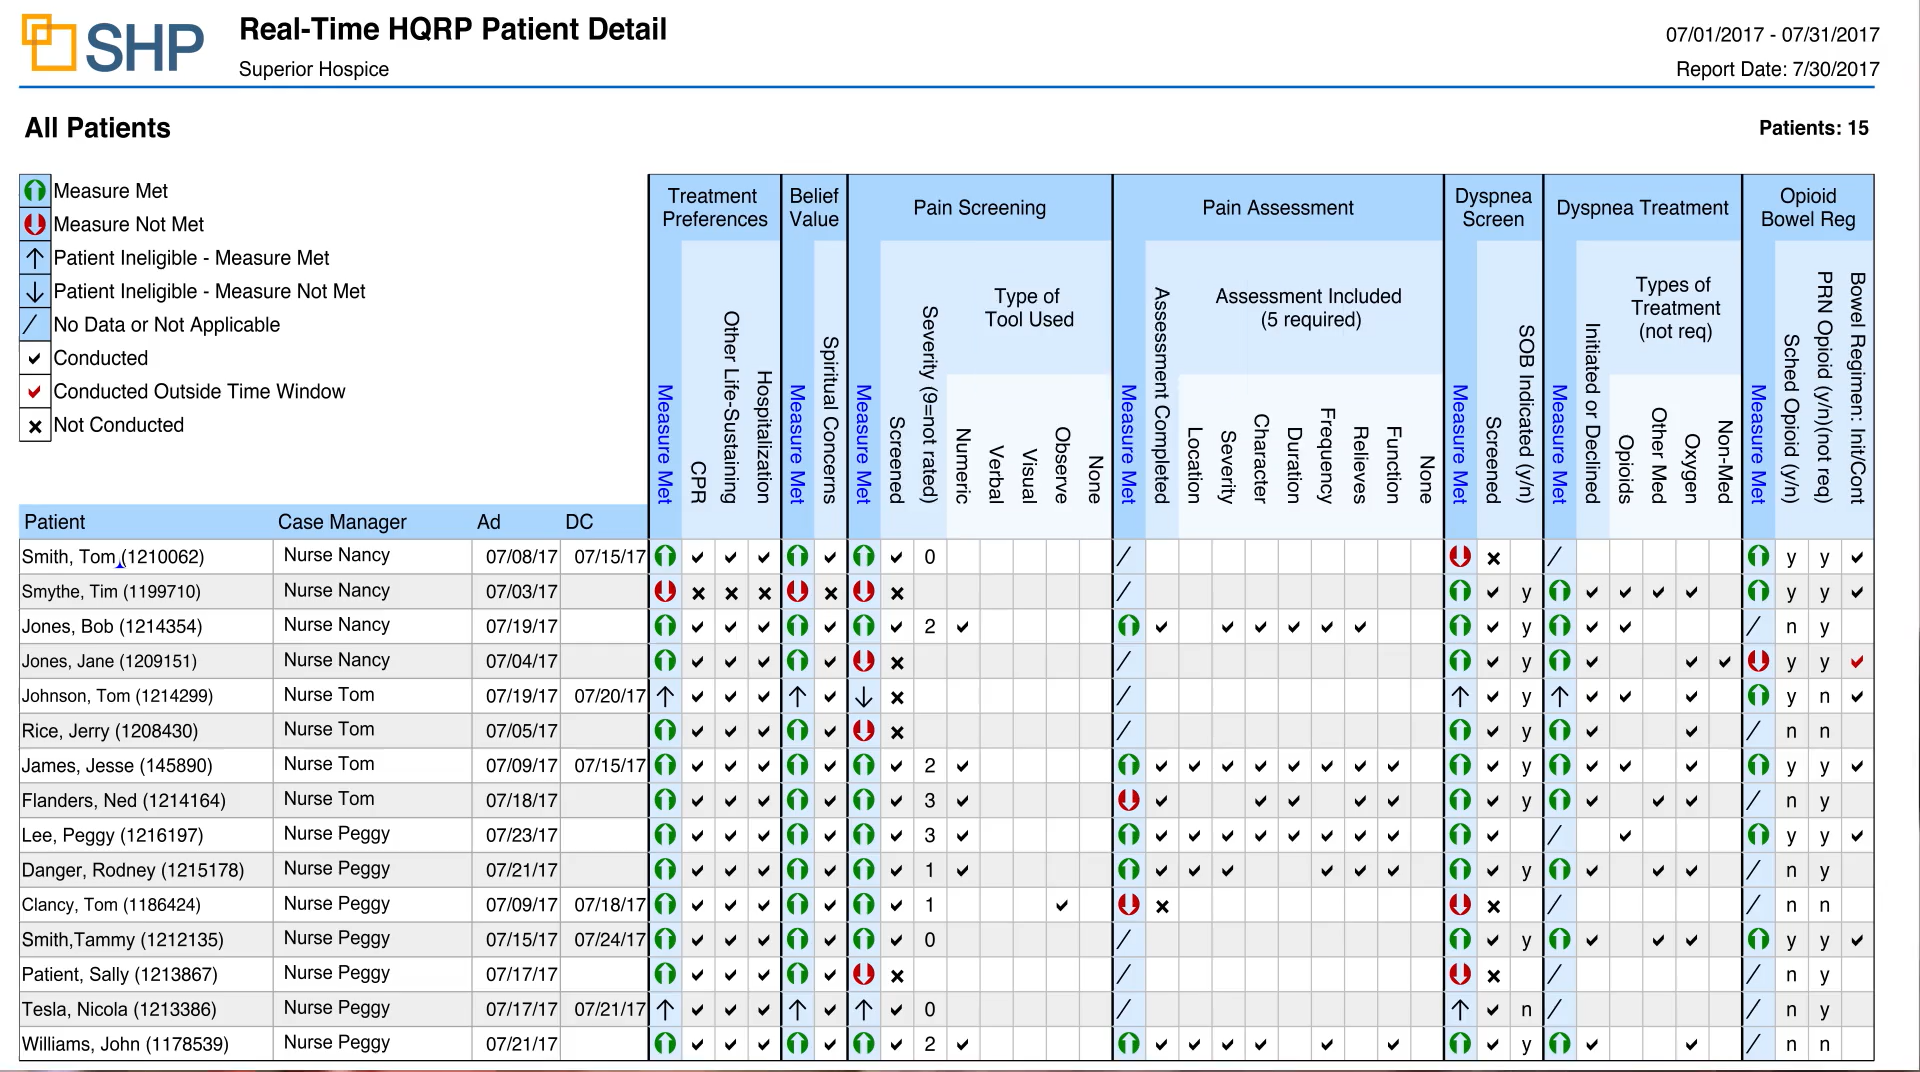 SHP for Hospice real-time HQRP patient detail